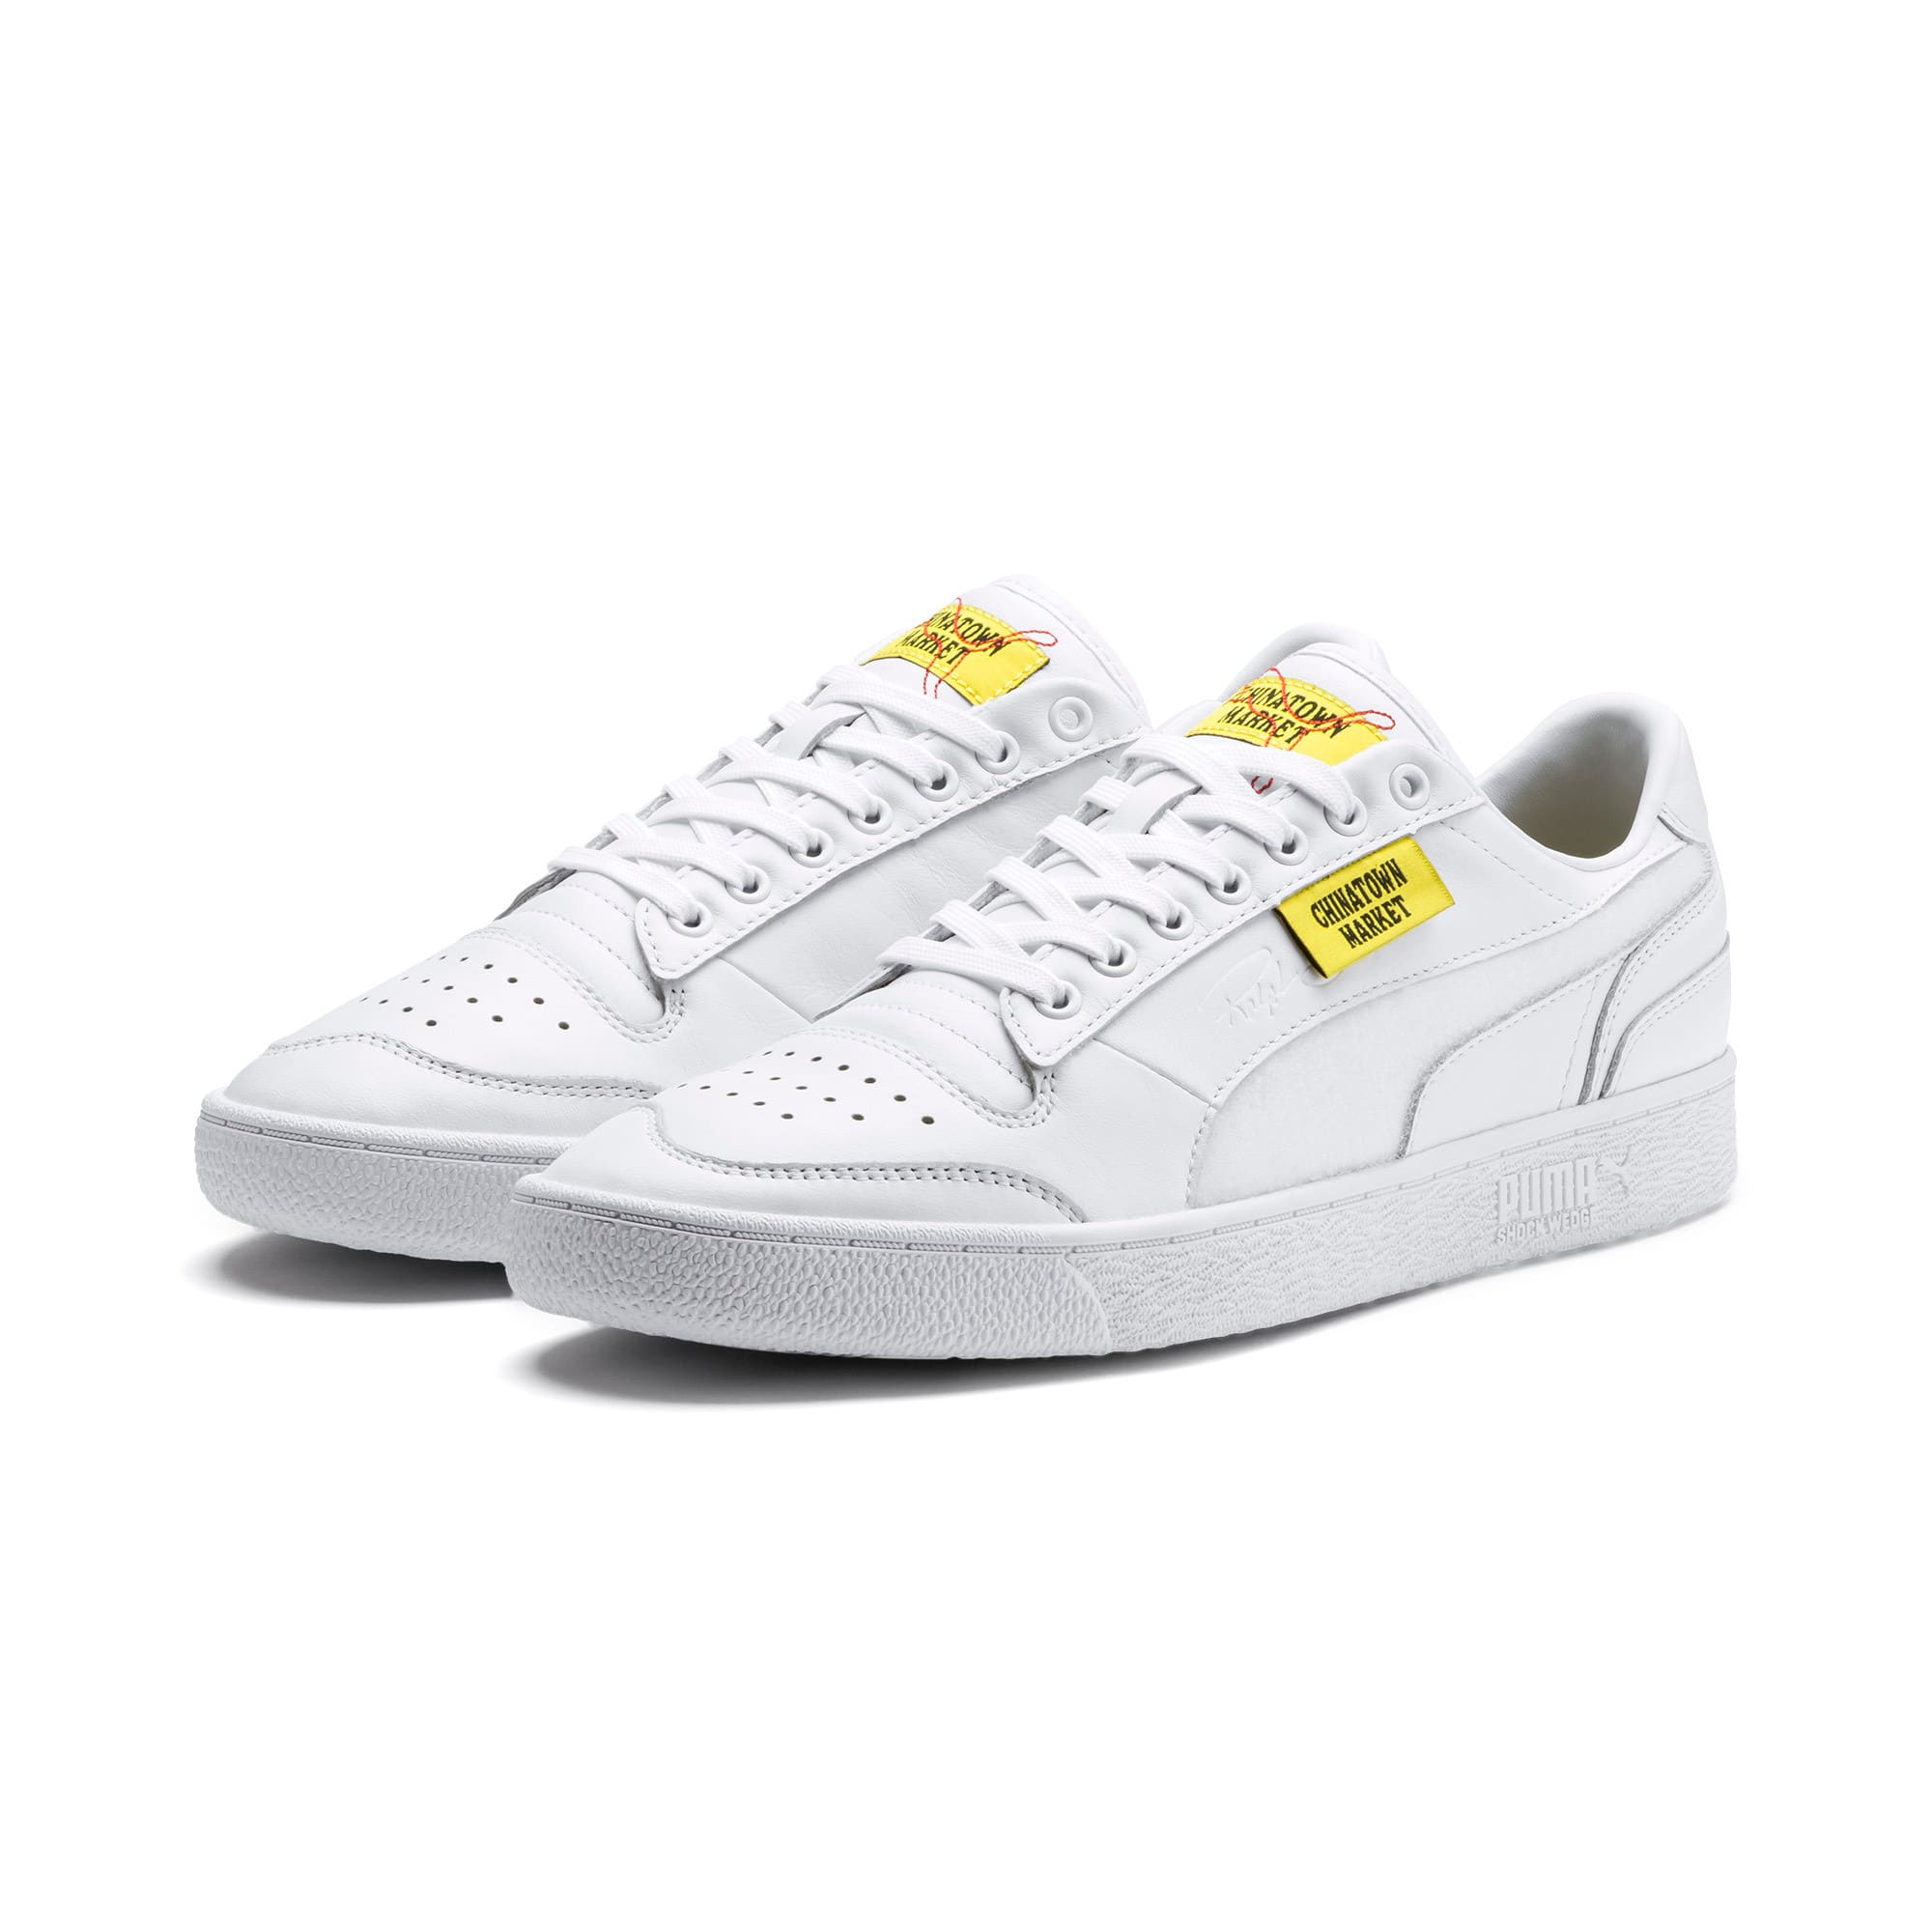 Thumbnail 9 of PUMA x CHINATOWN MARKET ラルフ サンプソン ローカット スニーカー, Puma White, medium-JPN